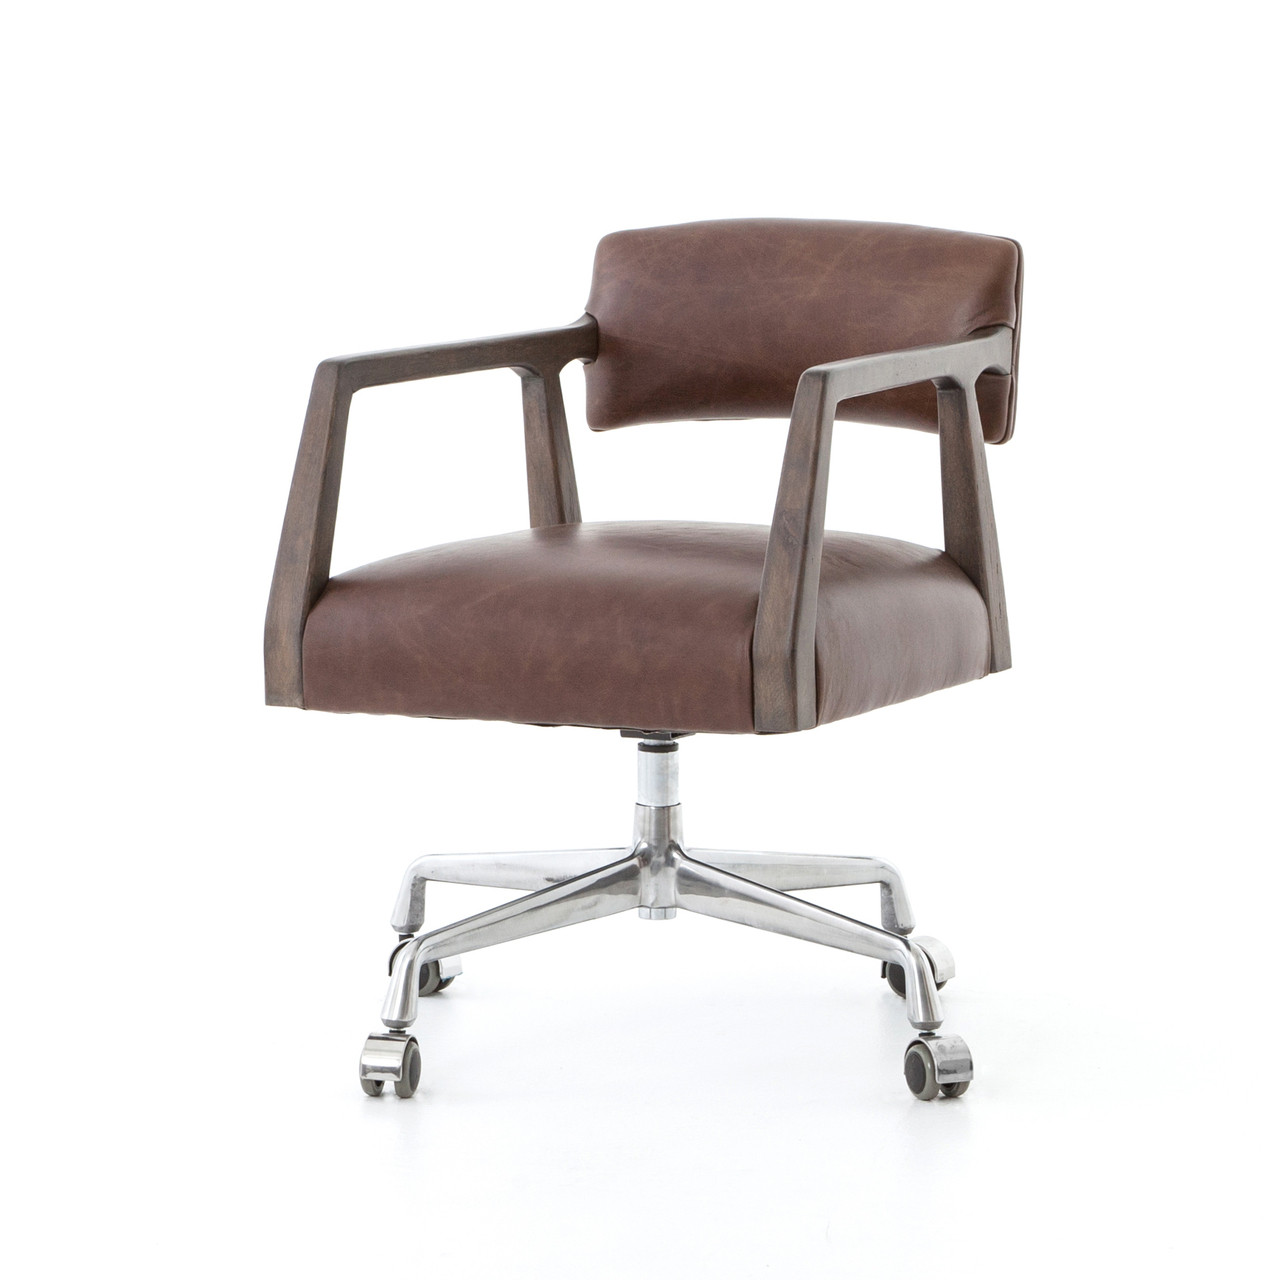 Incroyable Tyler Mid Century Modern Brown Leather Office Desk Chair